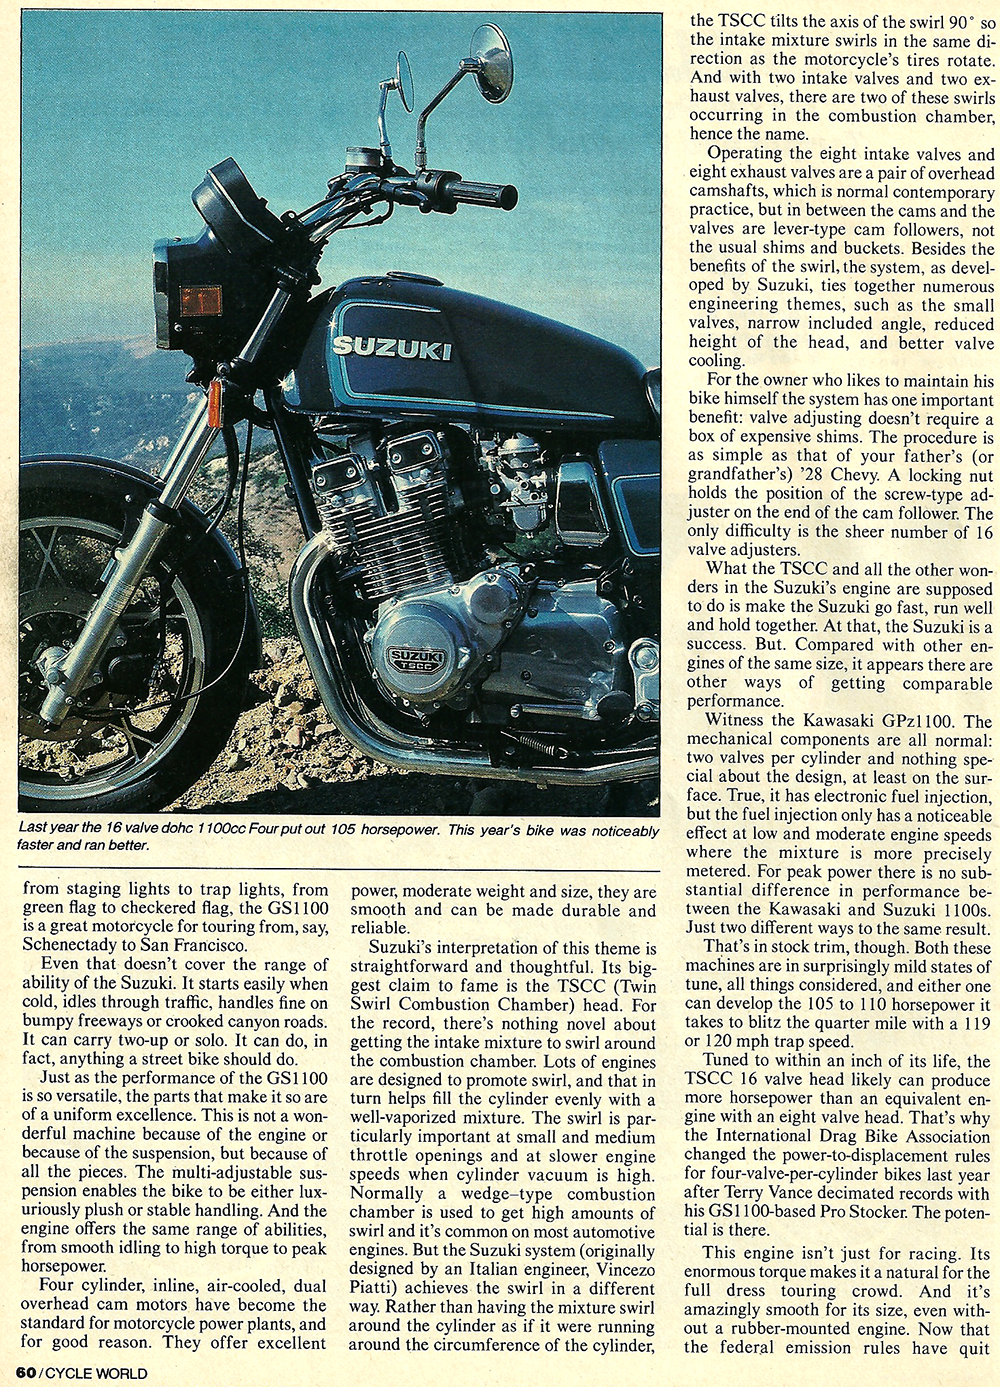 1981 Suzuki GS1100E road test 2.jpg